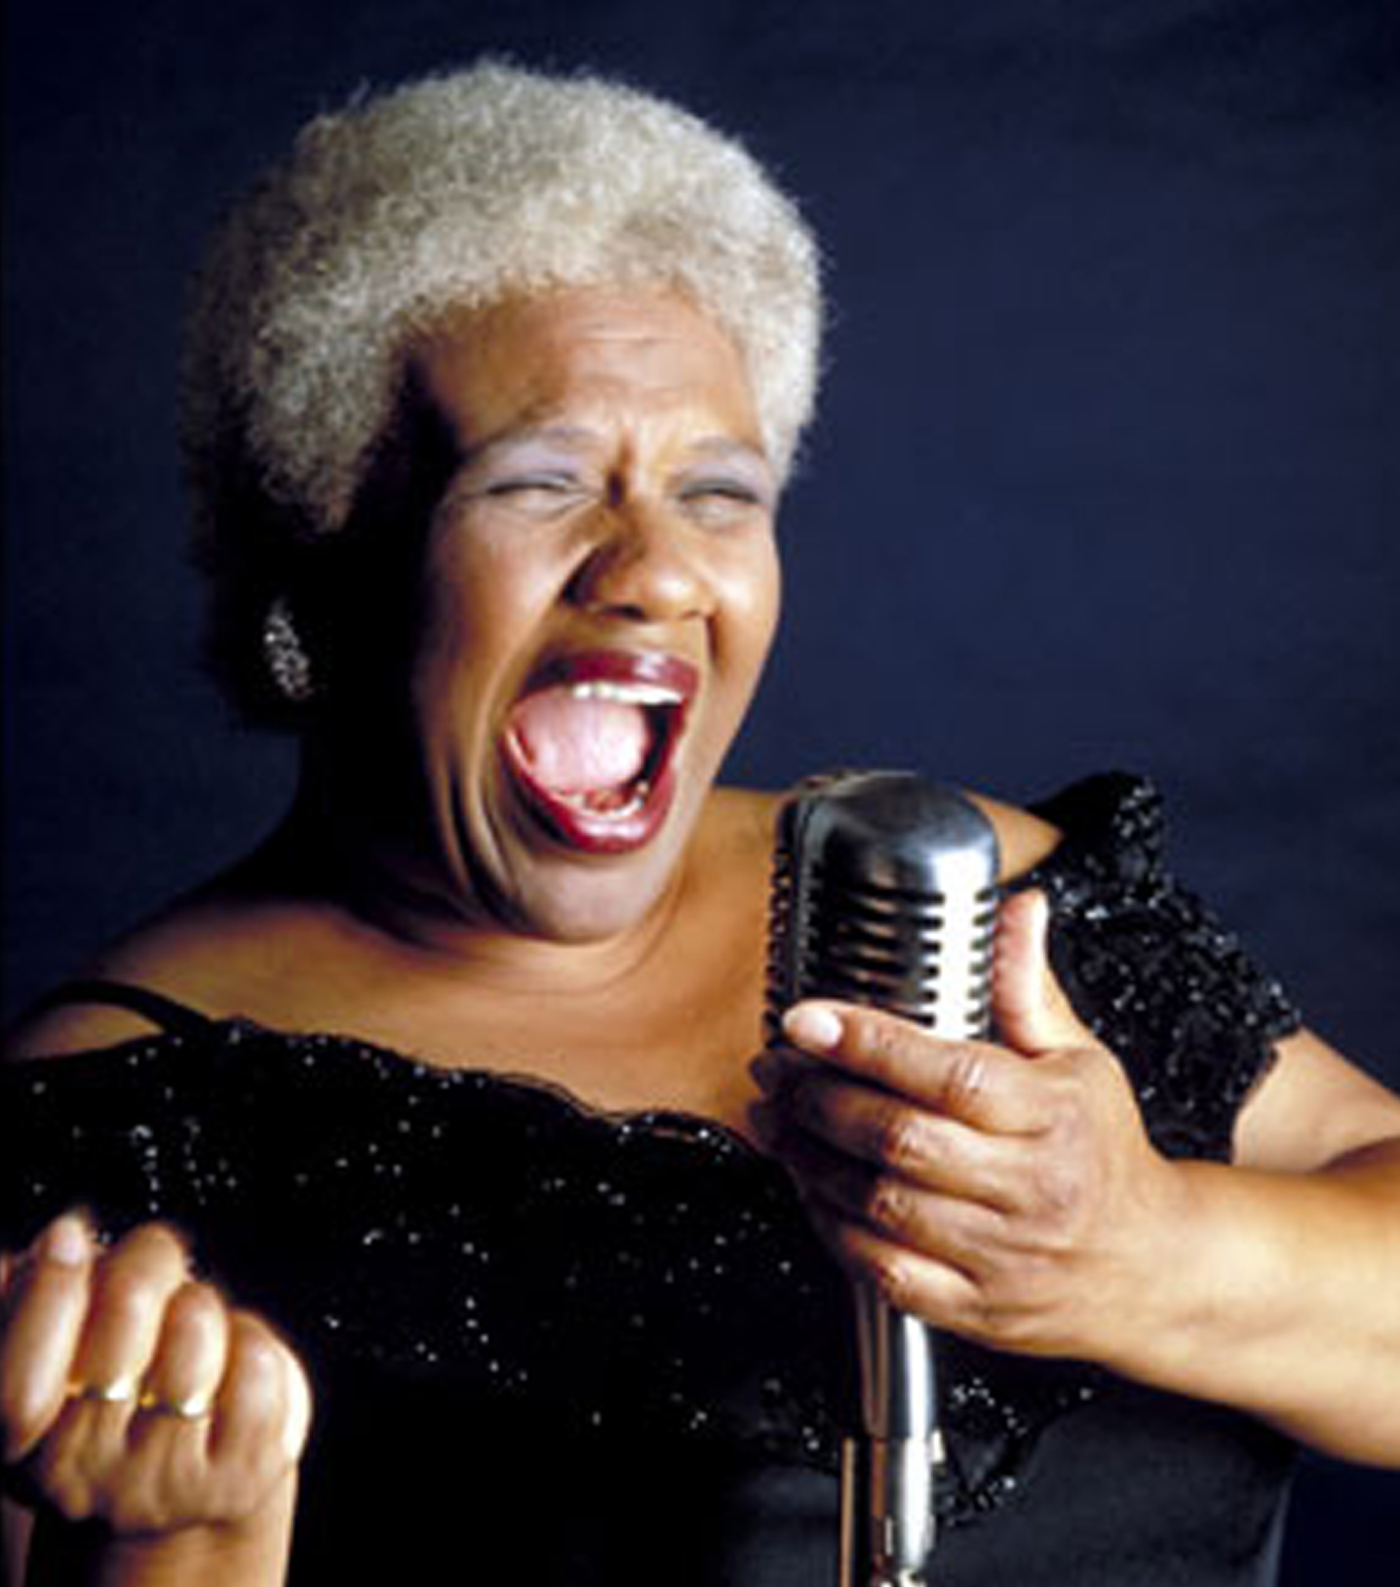 Barbara Morrison sang with many of the swing greats back in the day and is still performing today. http://barbaramorrison.com/